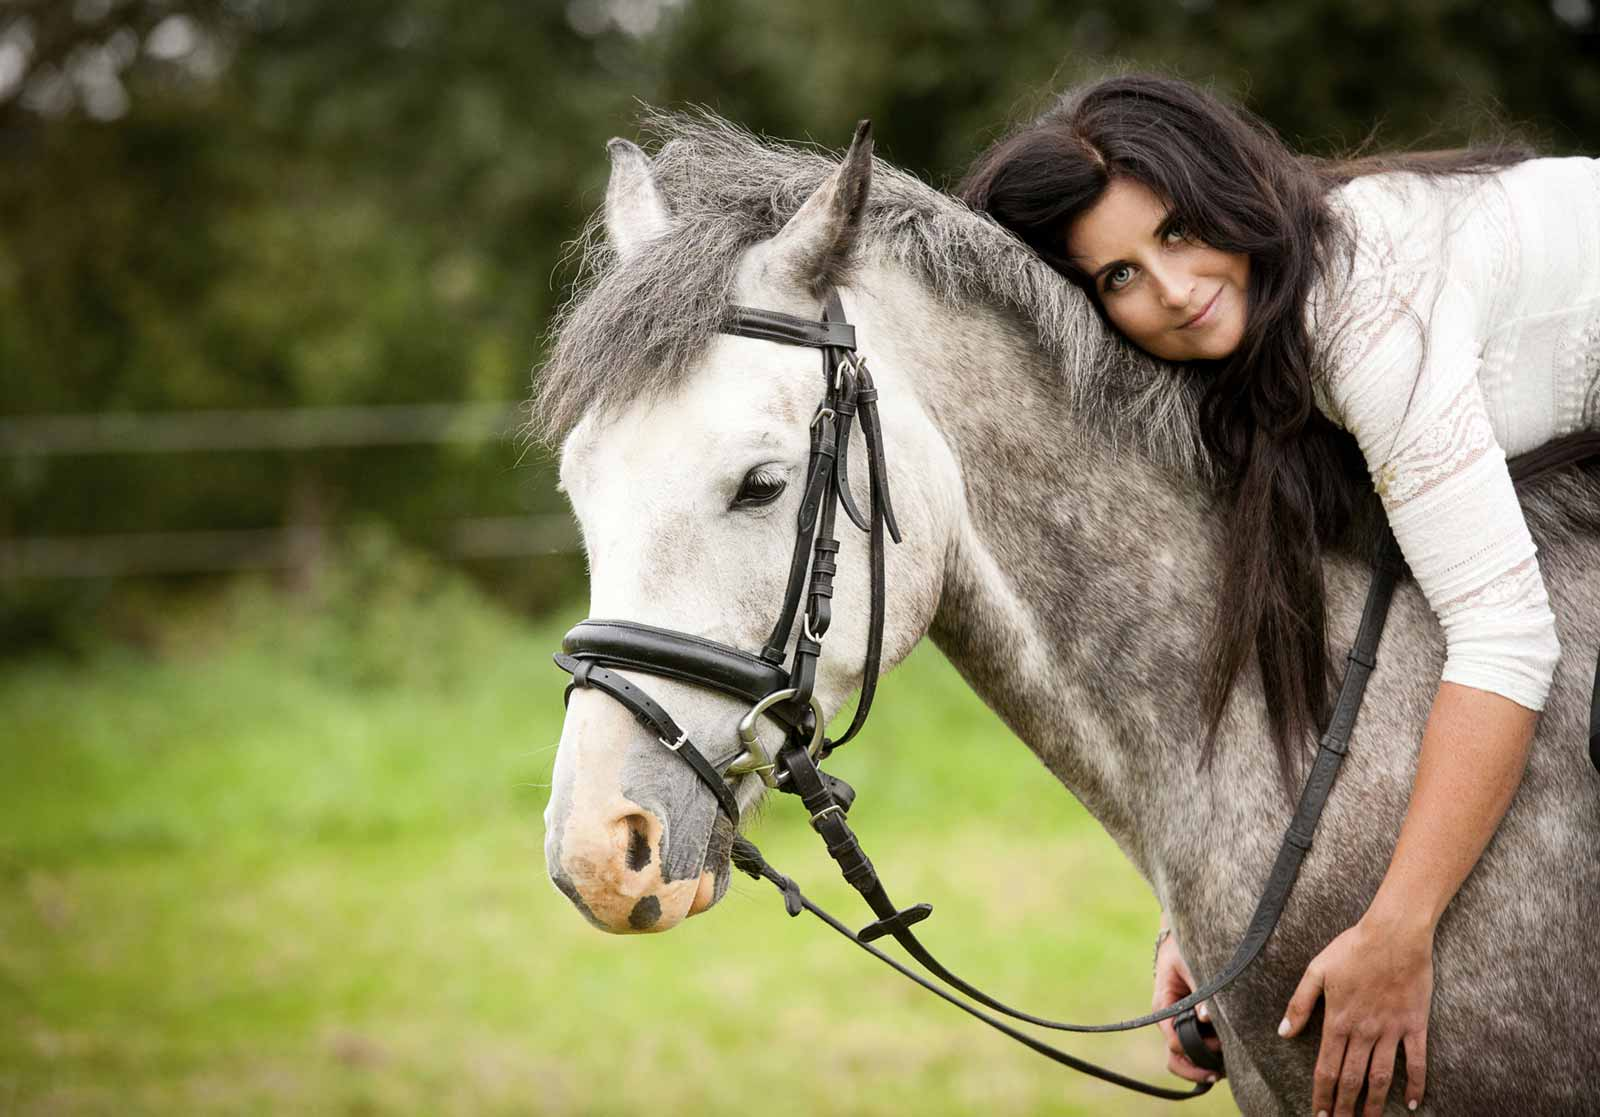 Equinenow Horses For Sale